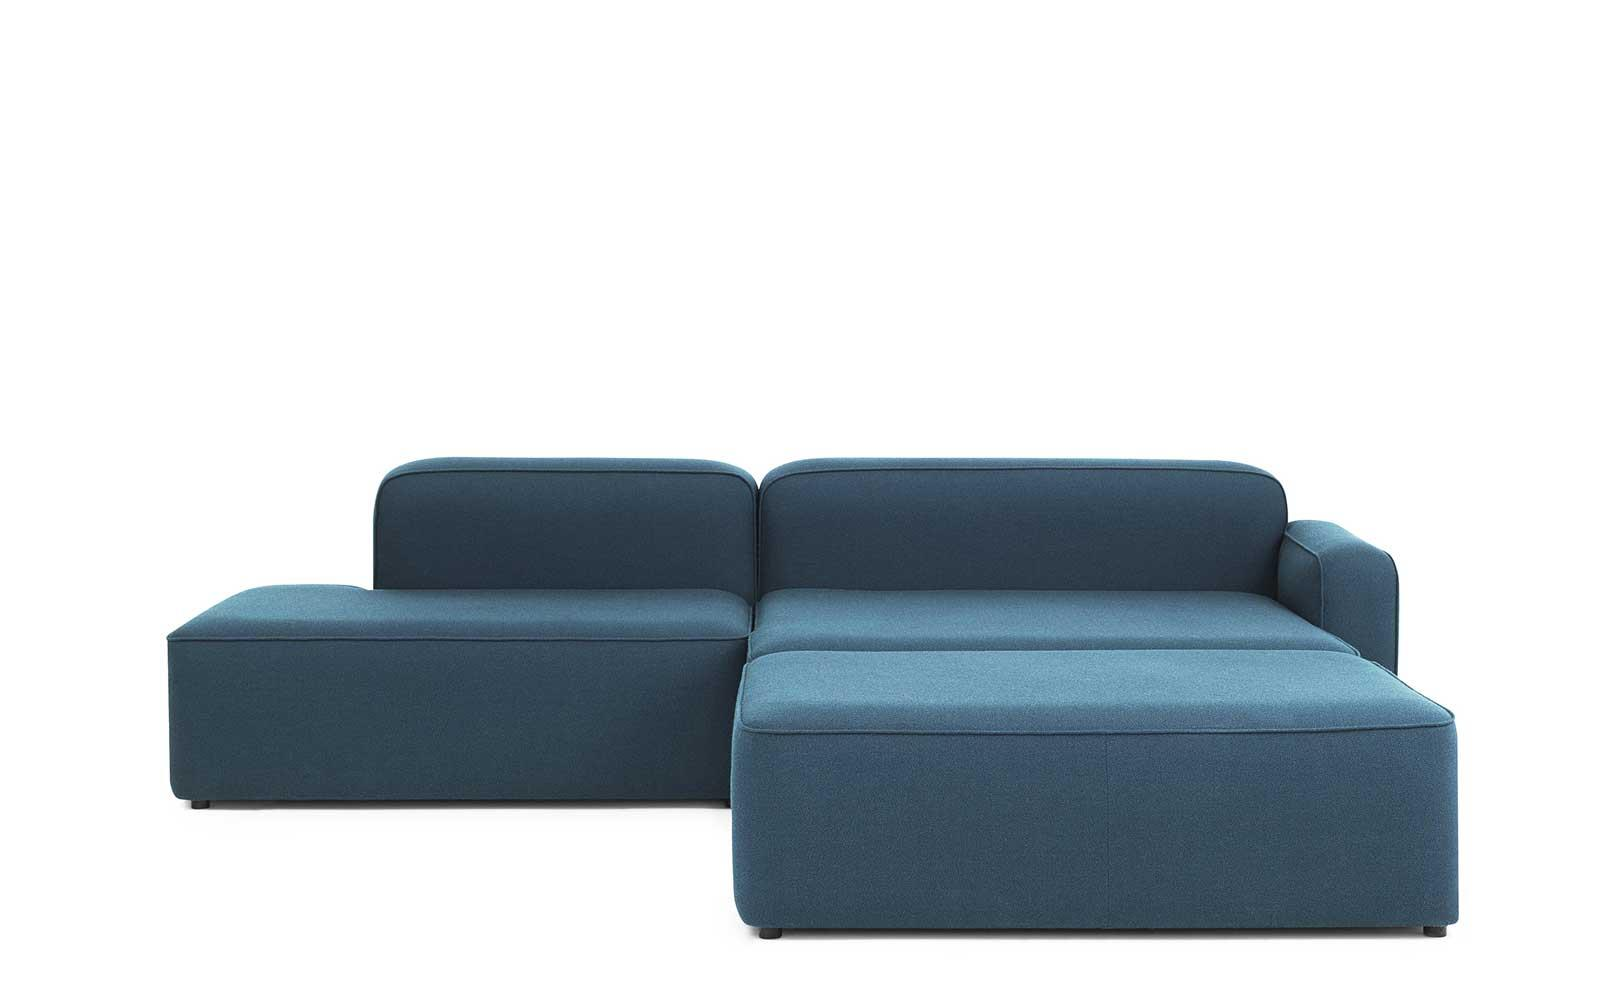 Rope Sofa Chaise Longue Right With Pouf